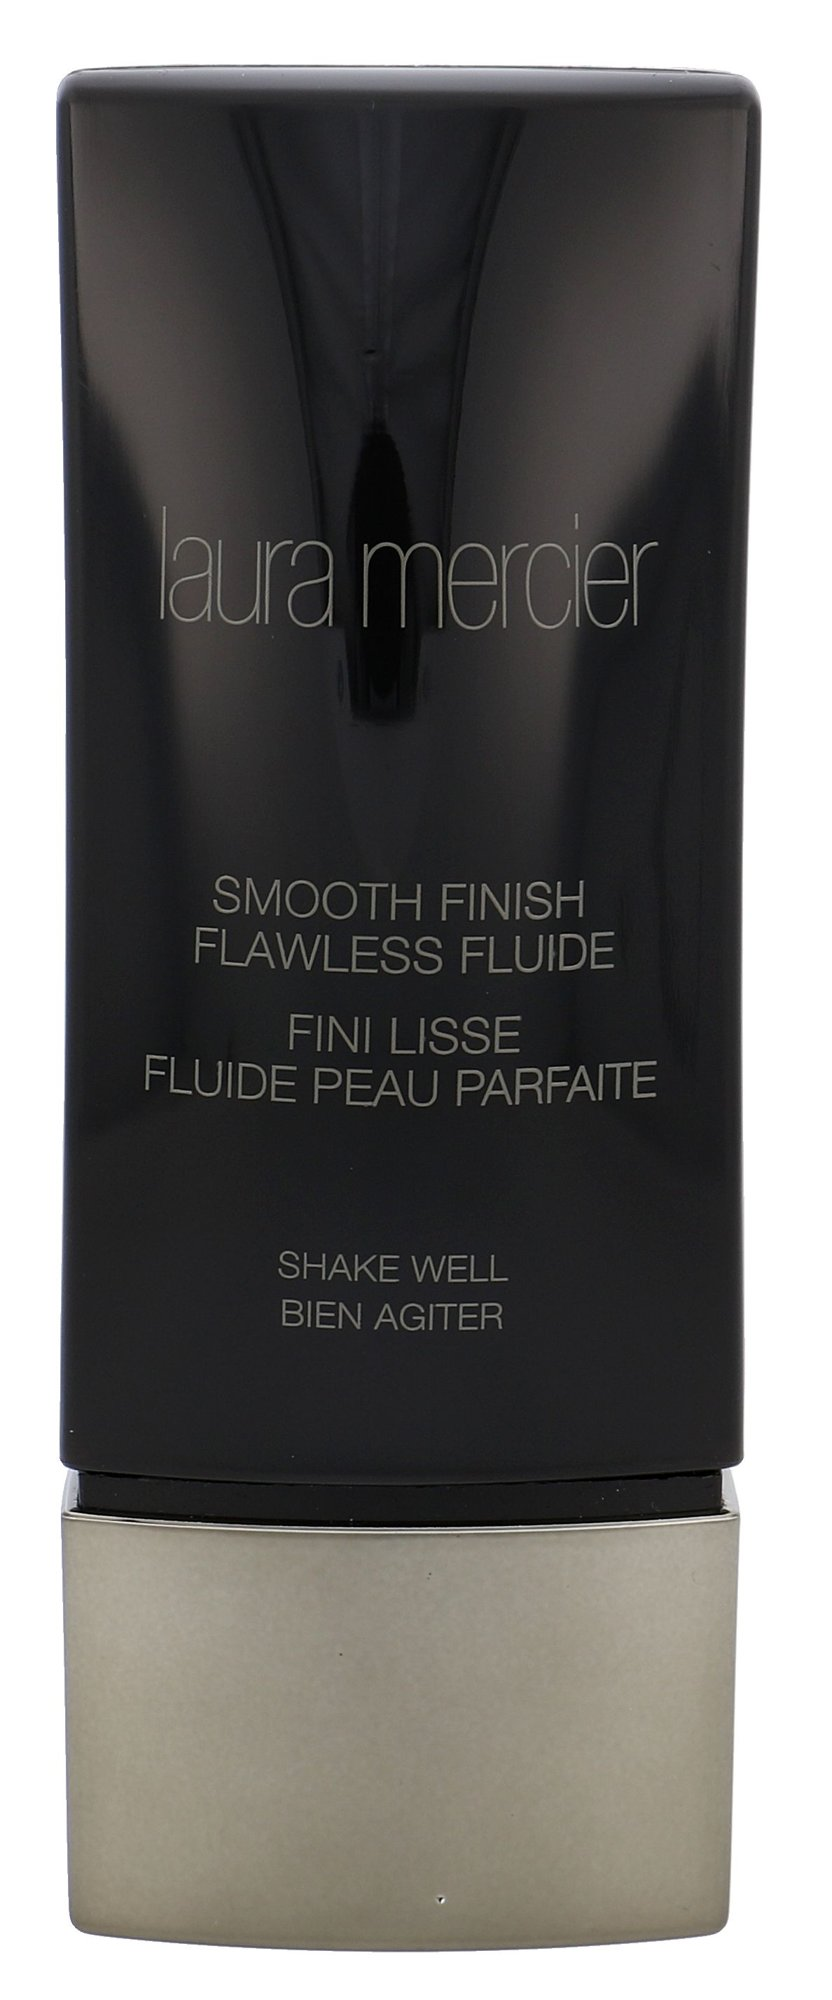 Laura Mercier Smooth Finish Flawless Fluide Cosmetic 30ml Butterscotch